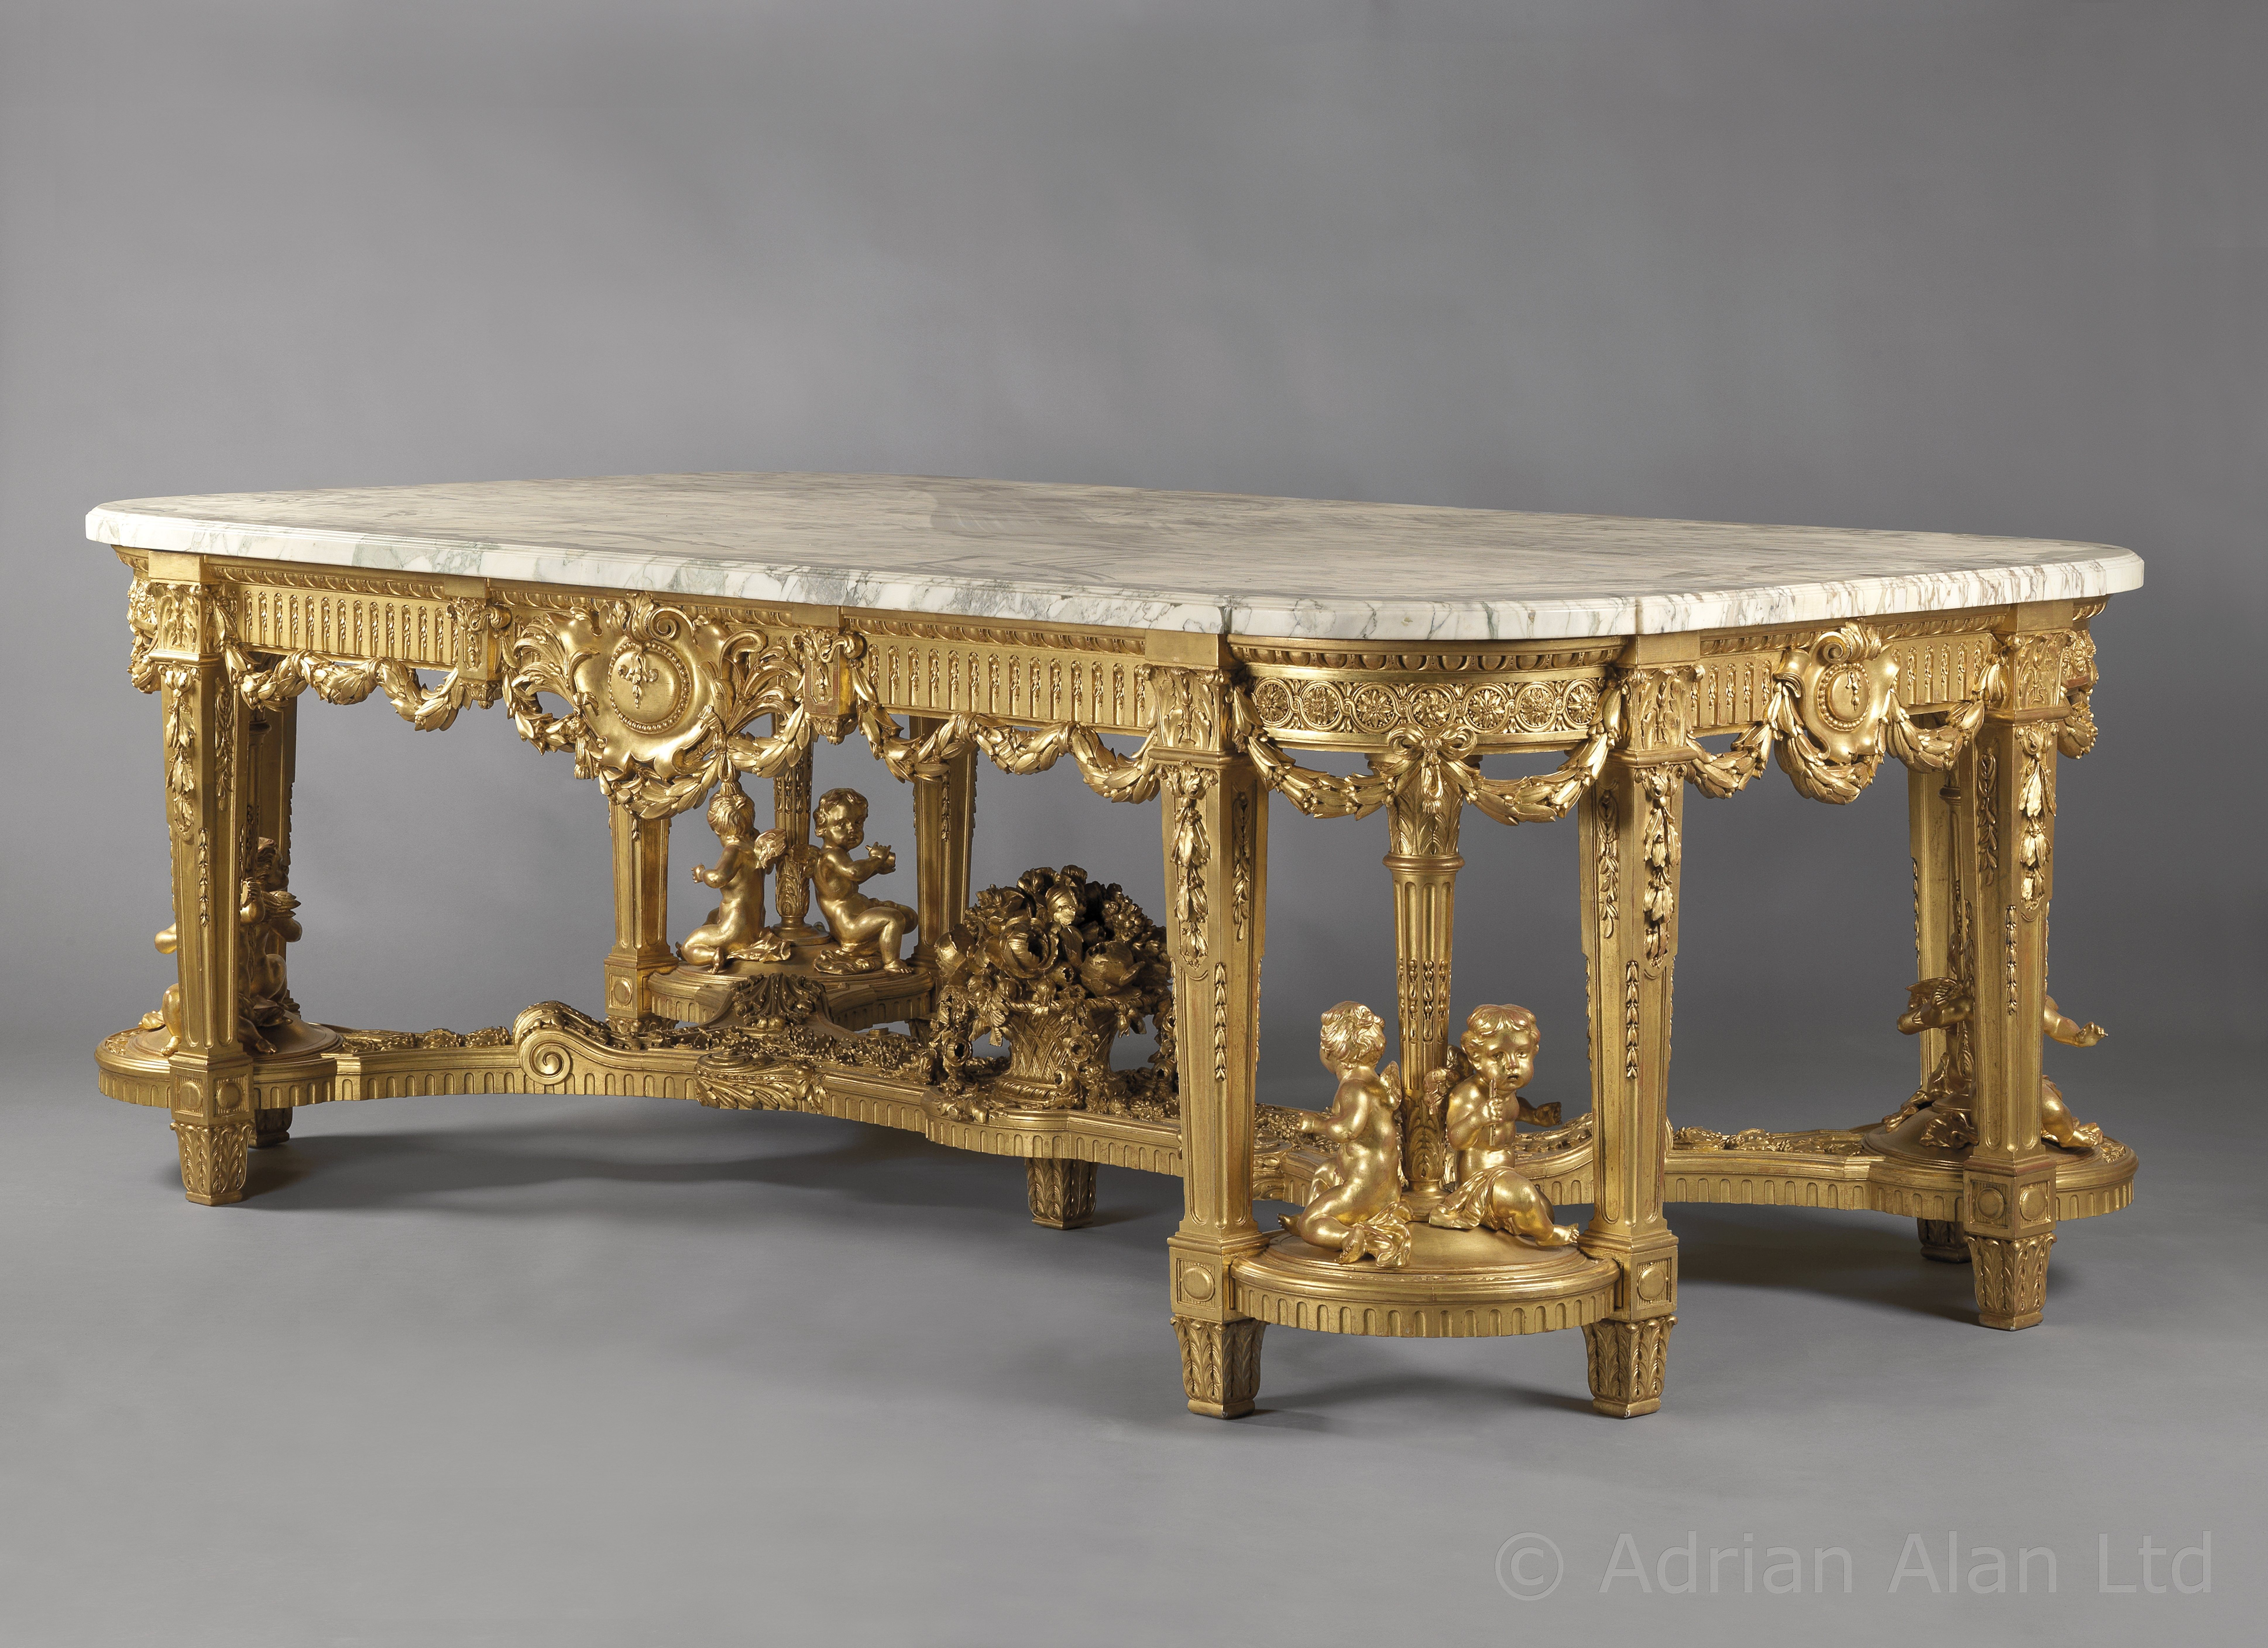 A Unique Monumental Antique Louis XVI Style Giltwood Centre Table With A Brèche  Violette Marble Top, by François Linke,  French, 1914.